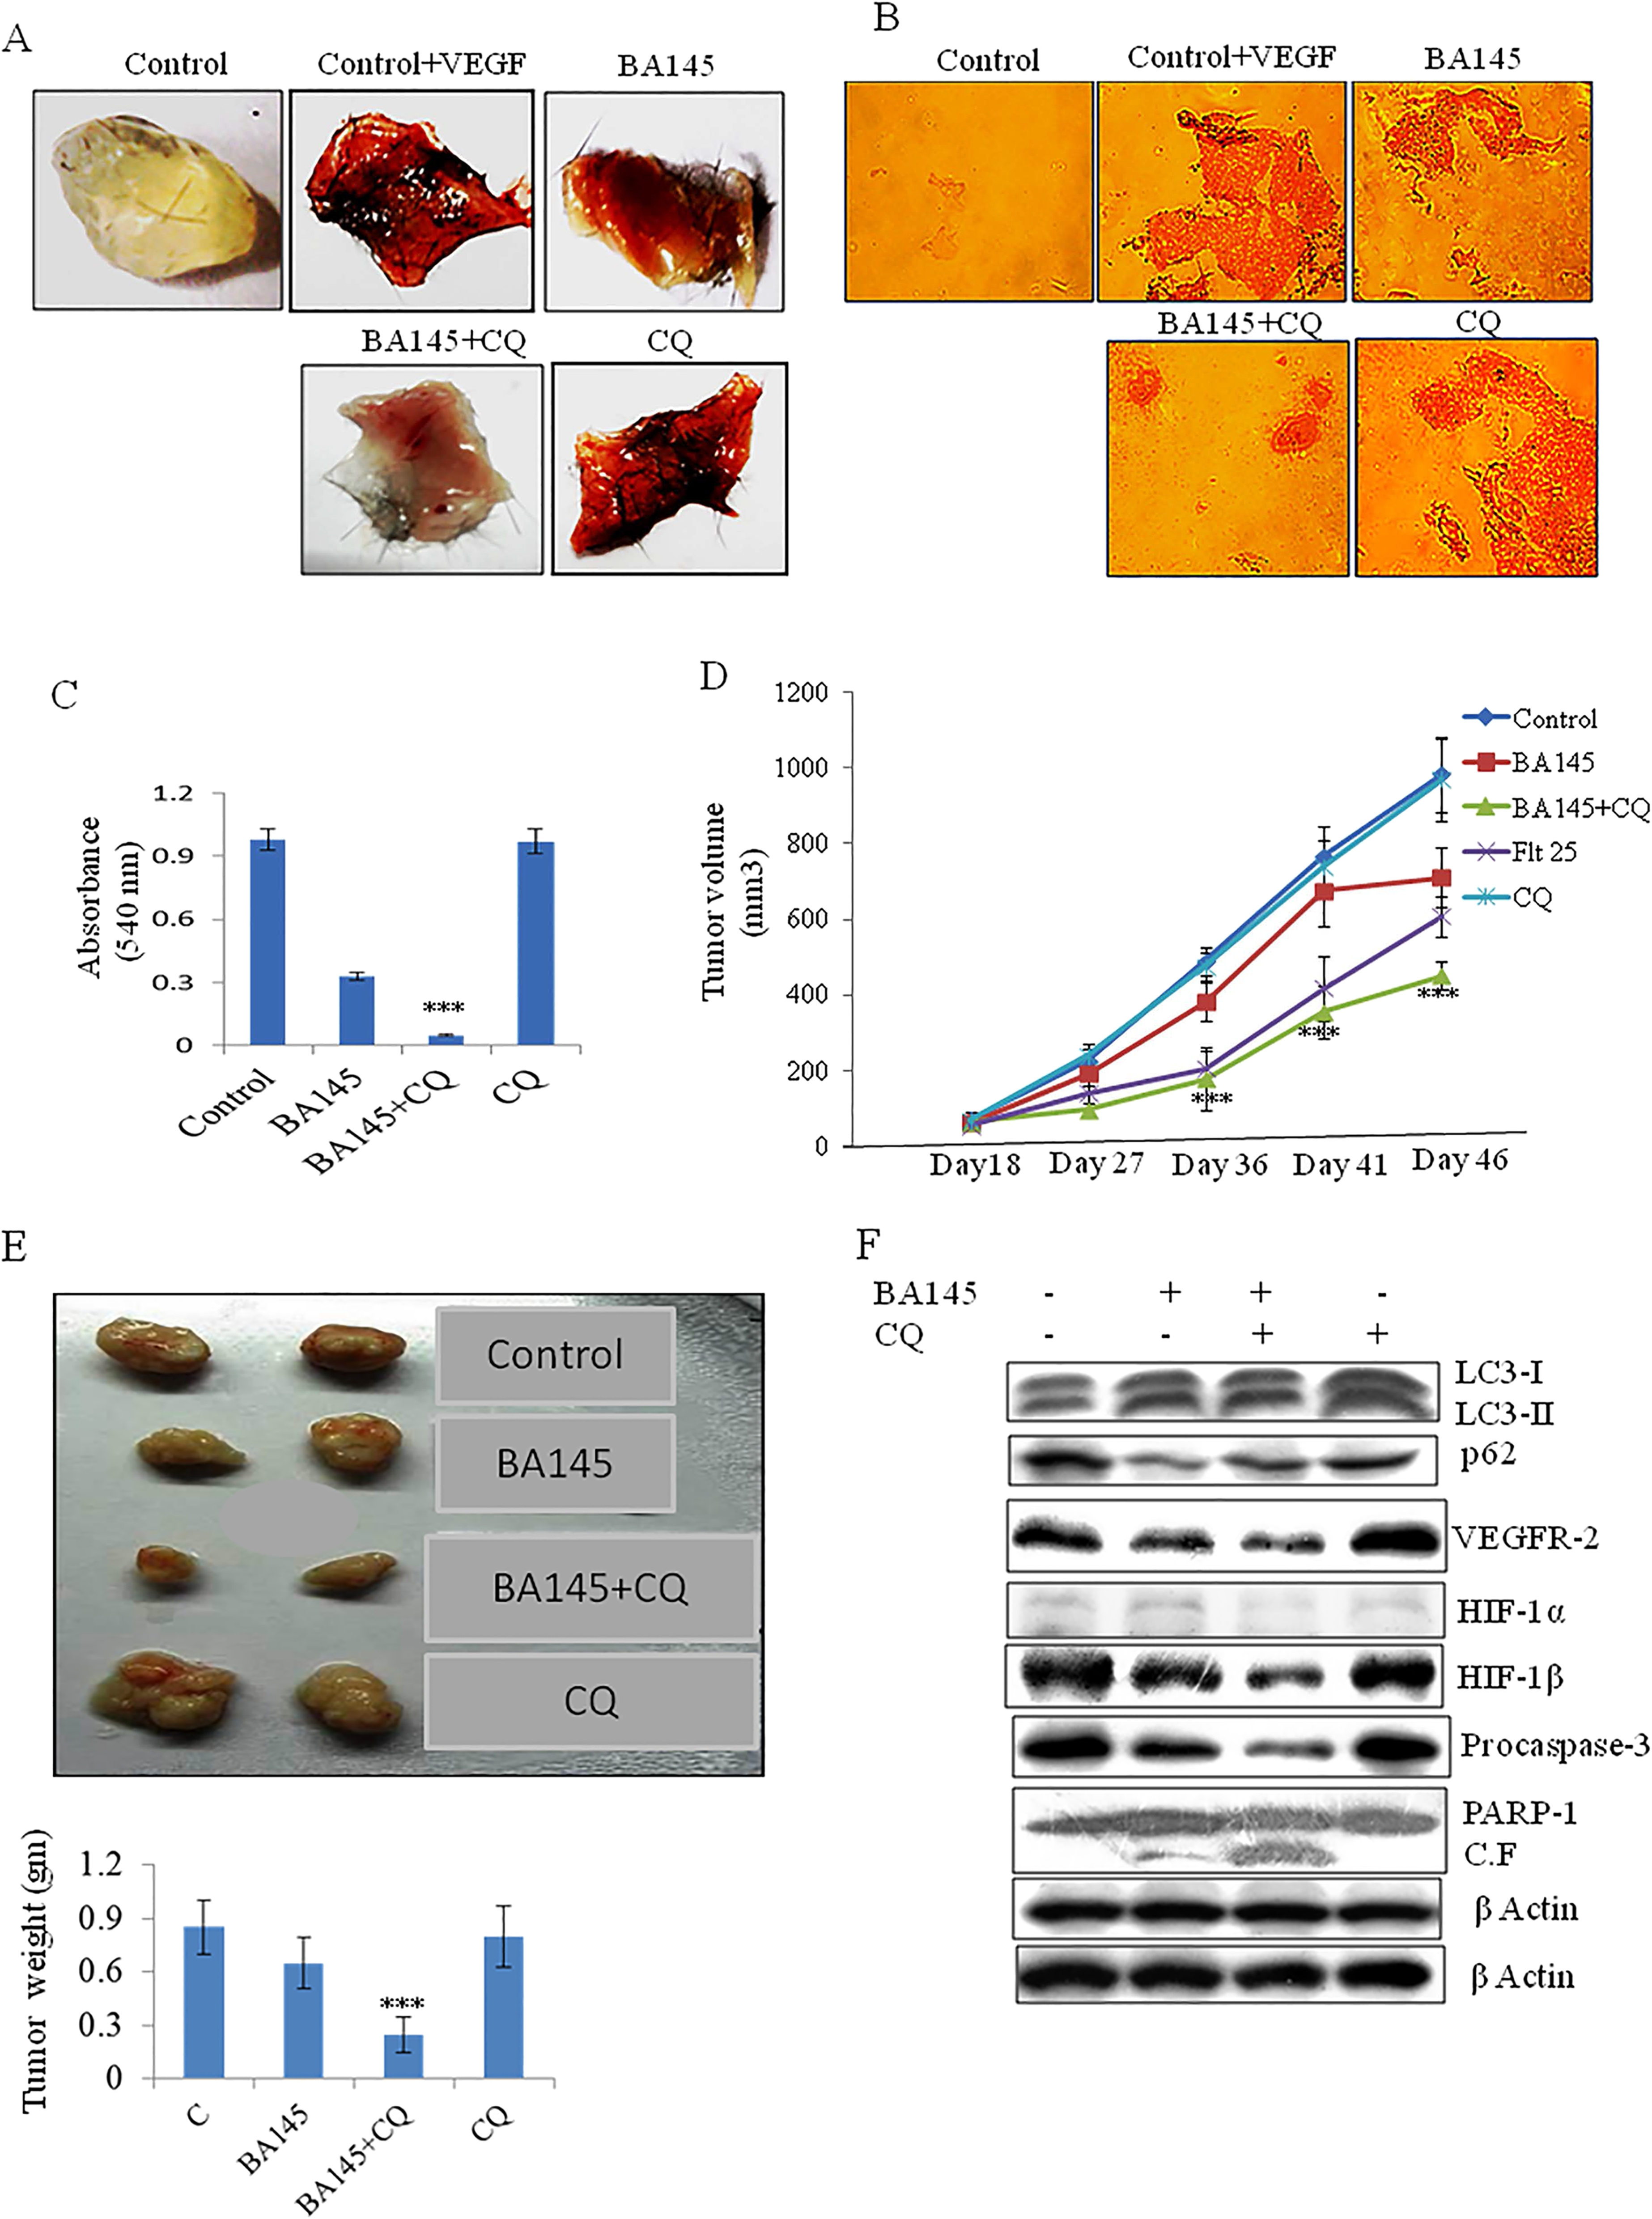 Autophagy inhibition potentiates the anti-angiogenic effects of BA145 in vivo. (A) Effect of BA145 and CQ on VEGF induced angiogenesis. Six weeks old C57BL/6 J mice were injected with Matrigel containing BA145 (50 mg/kg), CQ (50 mg/kg), or both BA145 and CQ along with VEGF (150 ng) into the ventral area (6 mice per group). Matrigel plugs were monitored 10 days later. (B) Matrigel plugs were fixed, sectioned, and stained with H E. (C) Neovascularization of Matrigel plugs were quantified with Drabkin's reagent using a spectrophometer. (D) Effect of BA145 and CQ on tumor growth in vivo. PC-3 M-luc2 cells implanted into NOD.SCID mice were treated with vehicle, BA145 (75 mg/kg), BA145 (75 mg/kg) plus CQ (50 mg/kg), positive control flutamide (25 mg/kg), and CQ (50 mg/kg) on alternate days for 28 days. Tumor volumes are reported as mean ± SE. (E) Representative pictures of excised tumors and their mass. (F) Western blot analysis of the indicated proteins in tumor tissues. β actin was used as loading control. Columns, mean; bars, SD; with ***p